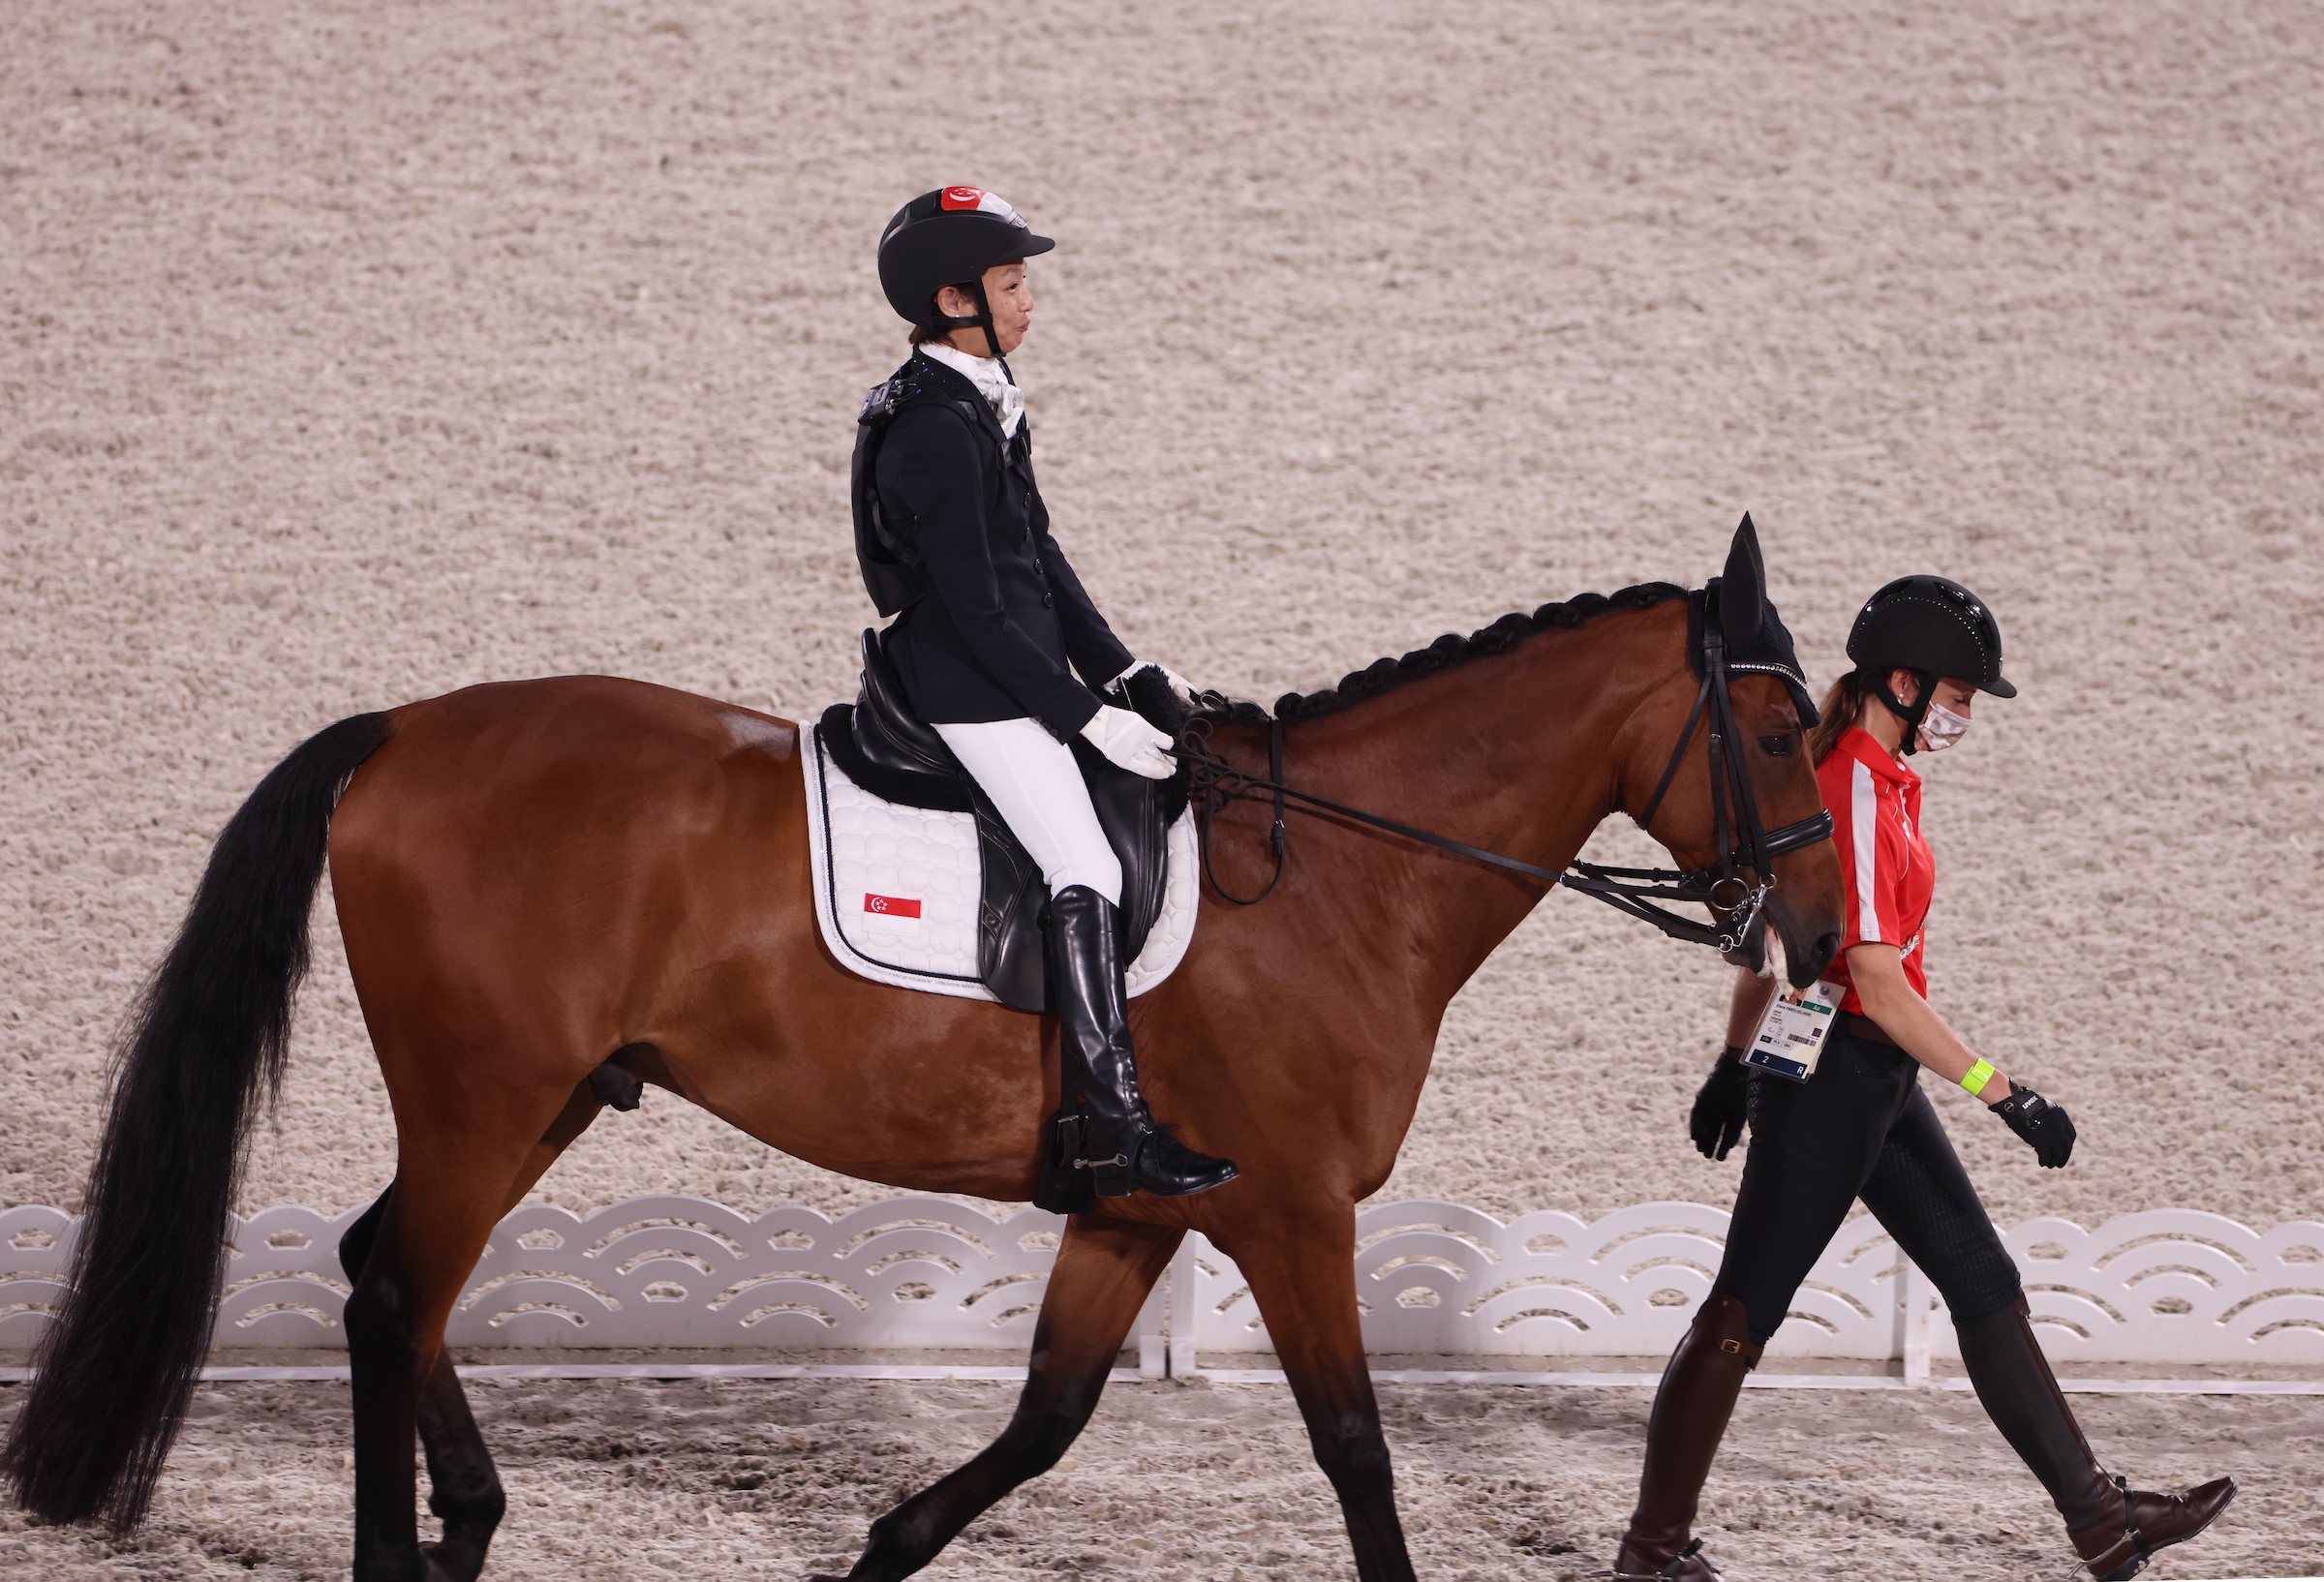 Tokyo 2020: TeamSG's Laurentia Tan misses out on her 5th Paralympic medal, despite brilliant Individual Freestyle Dressage display!